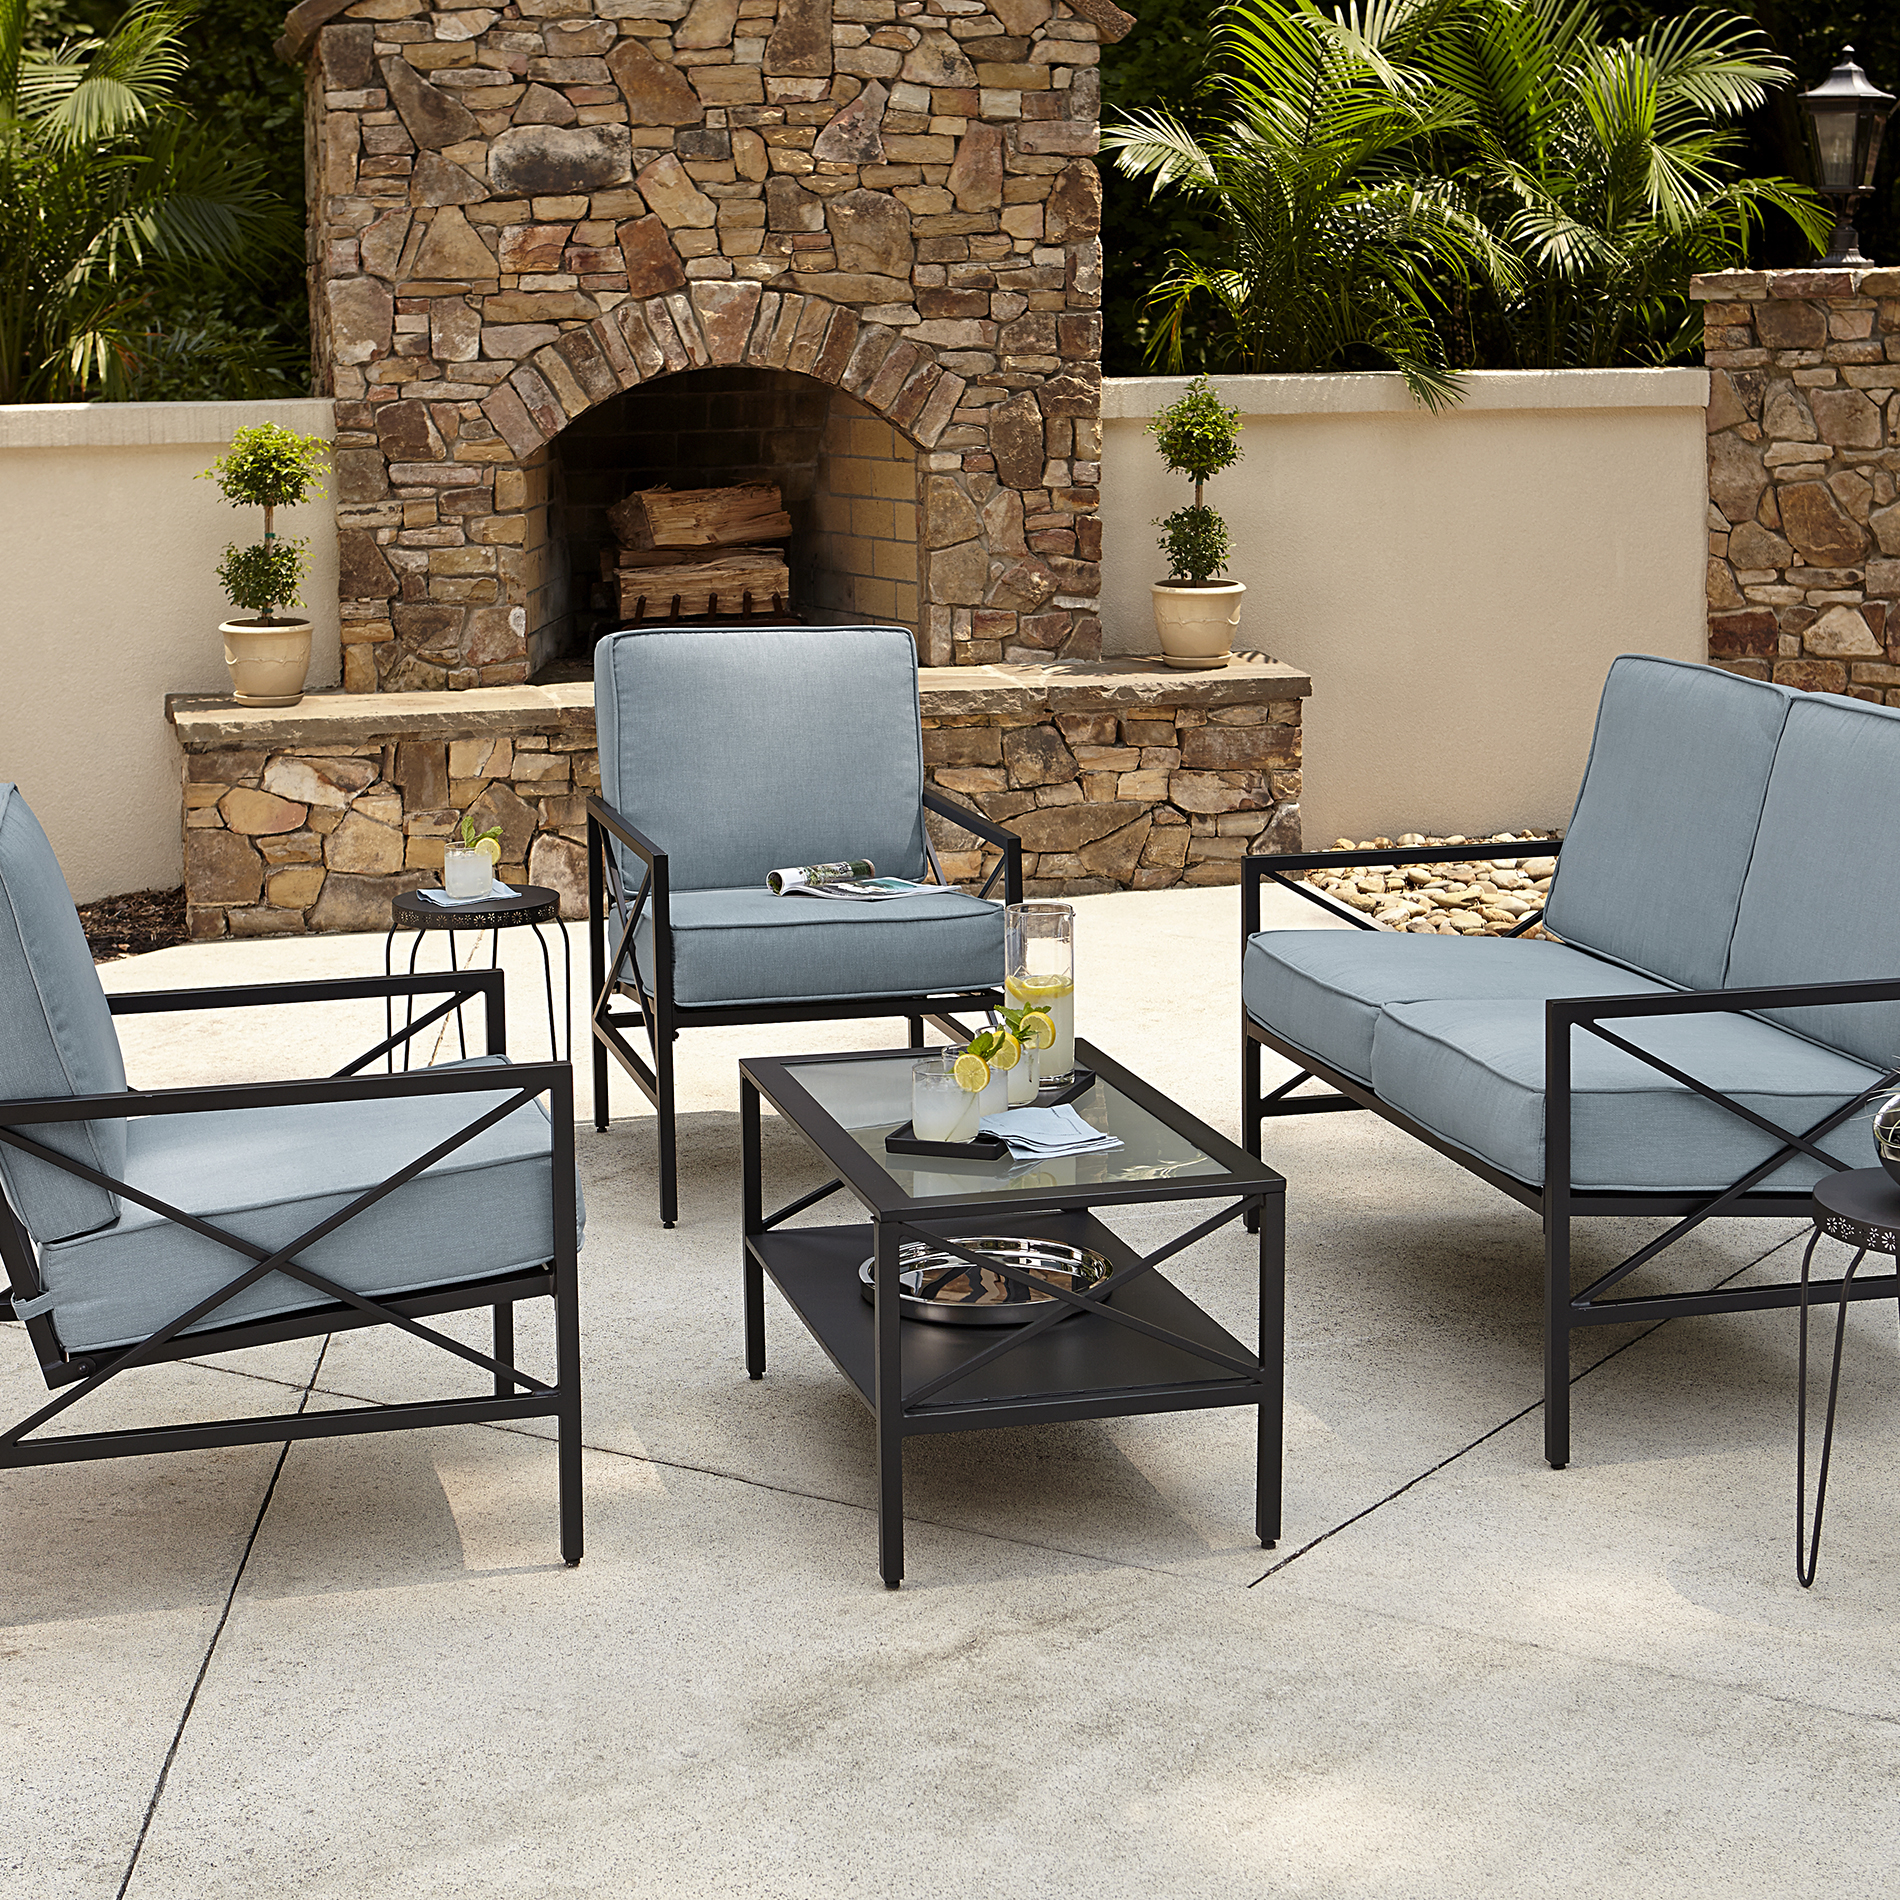 Essential Garden Anniston Blue 4 Piece Seating Set - Kmart